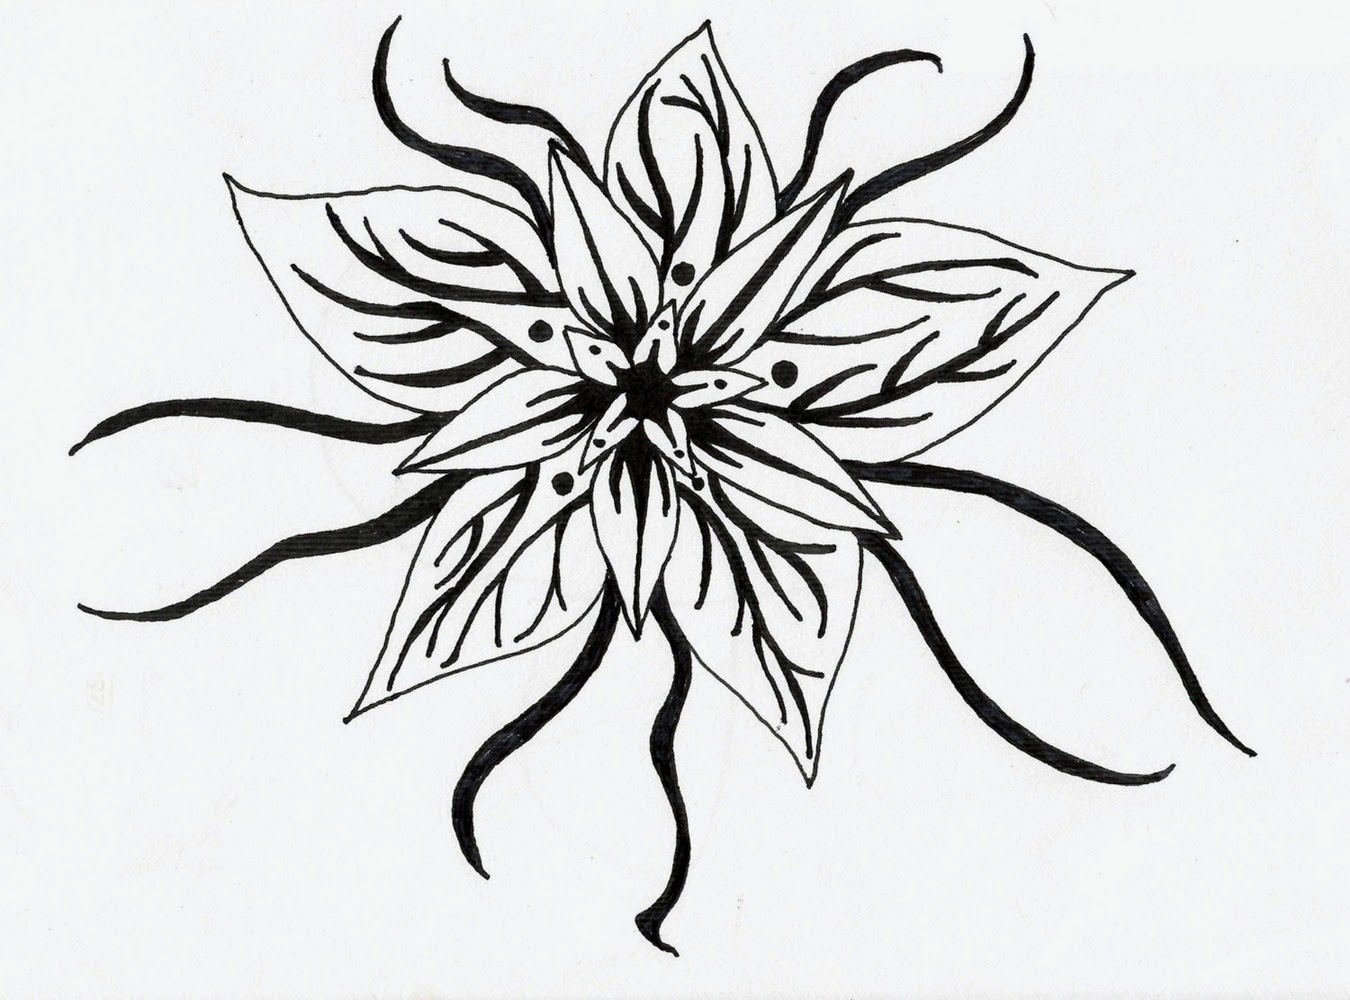 14 black and white floral designs images black and white for Cool designs in black and white